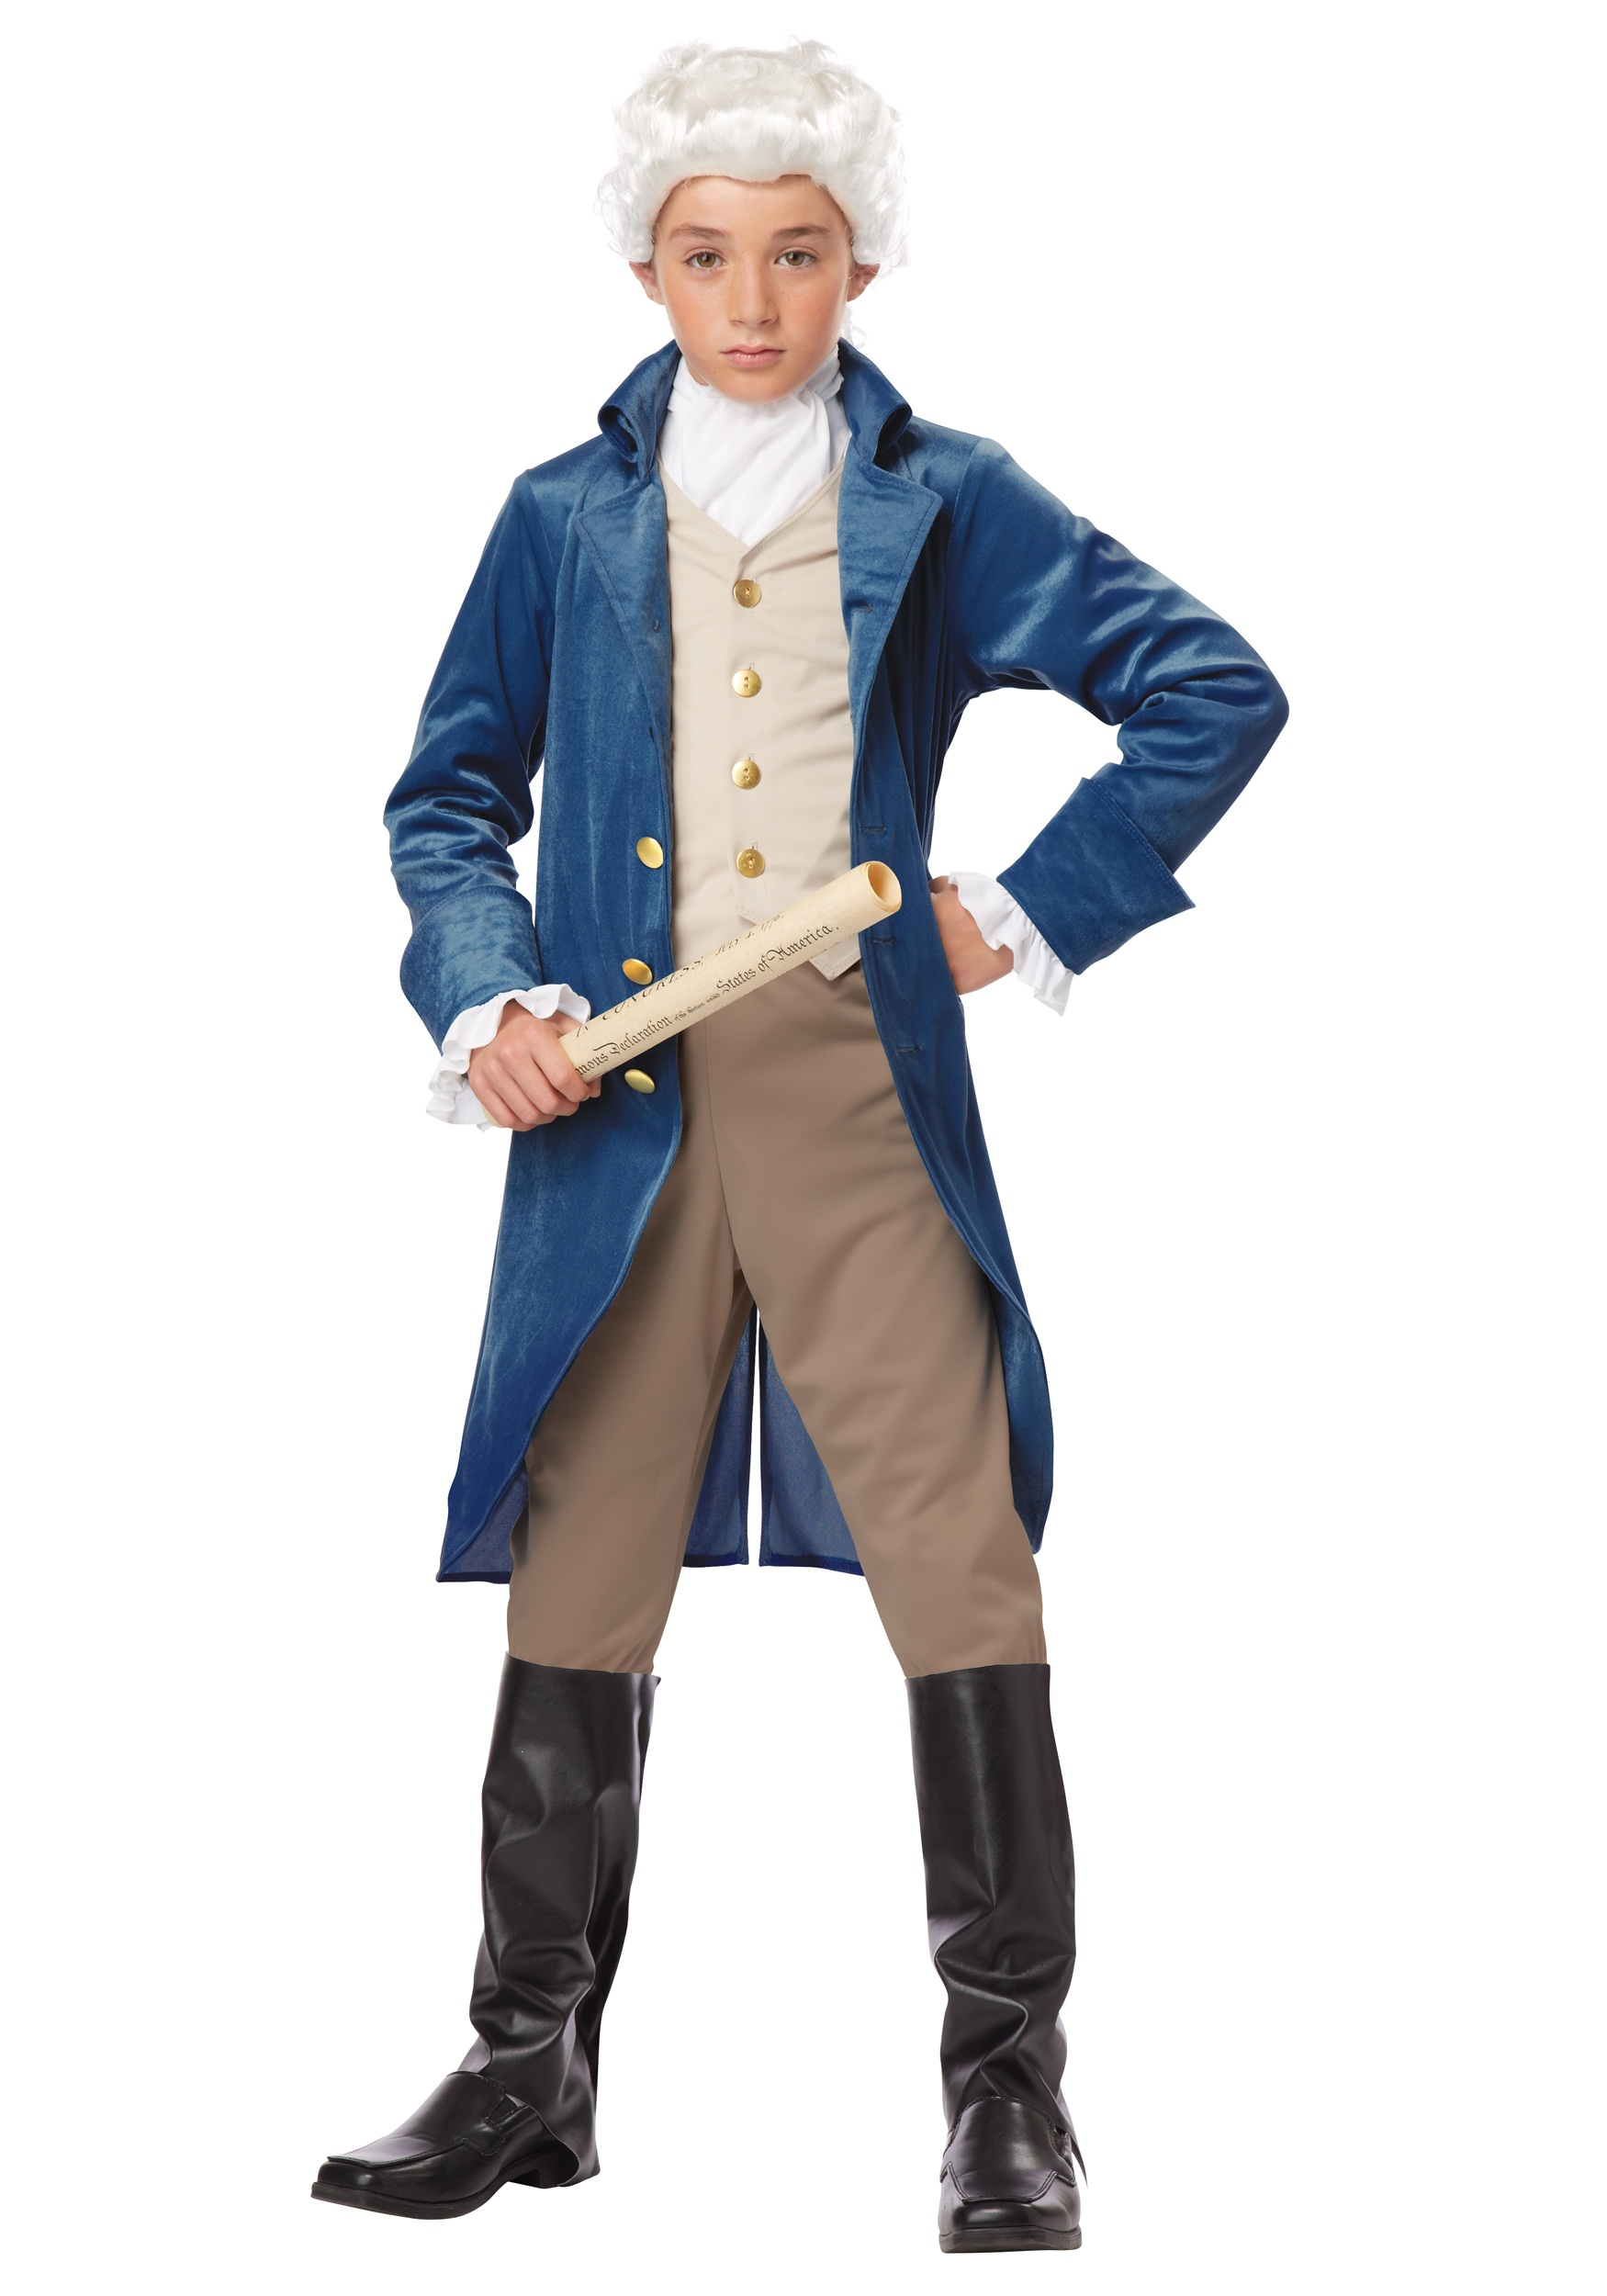 George Washington Costumes | Costumes FC